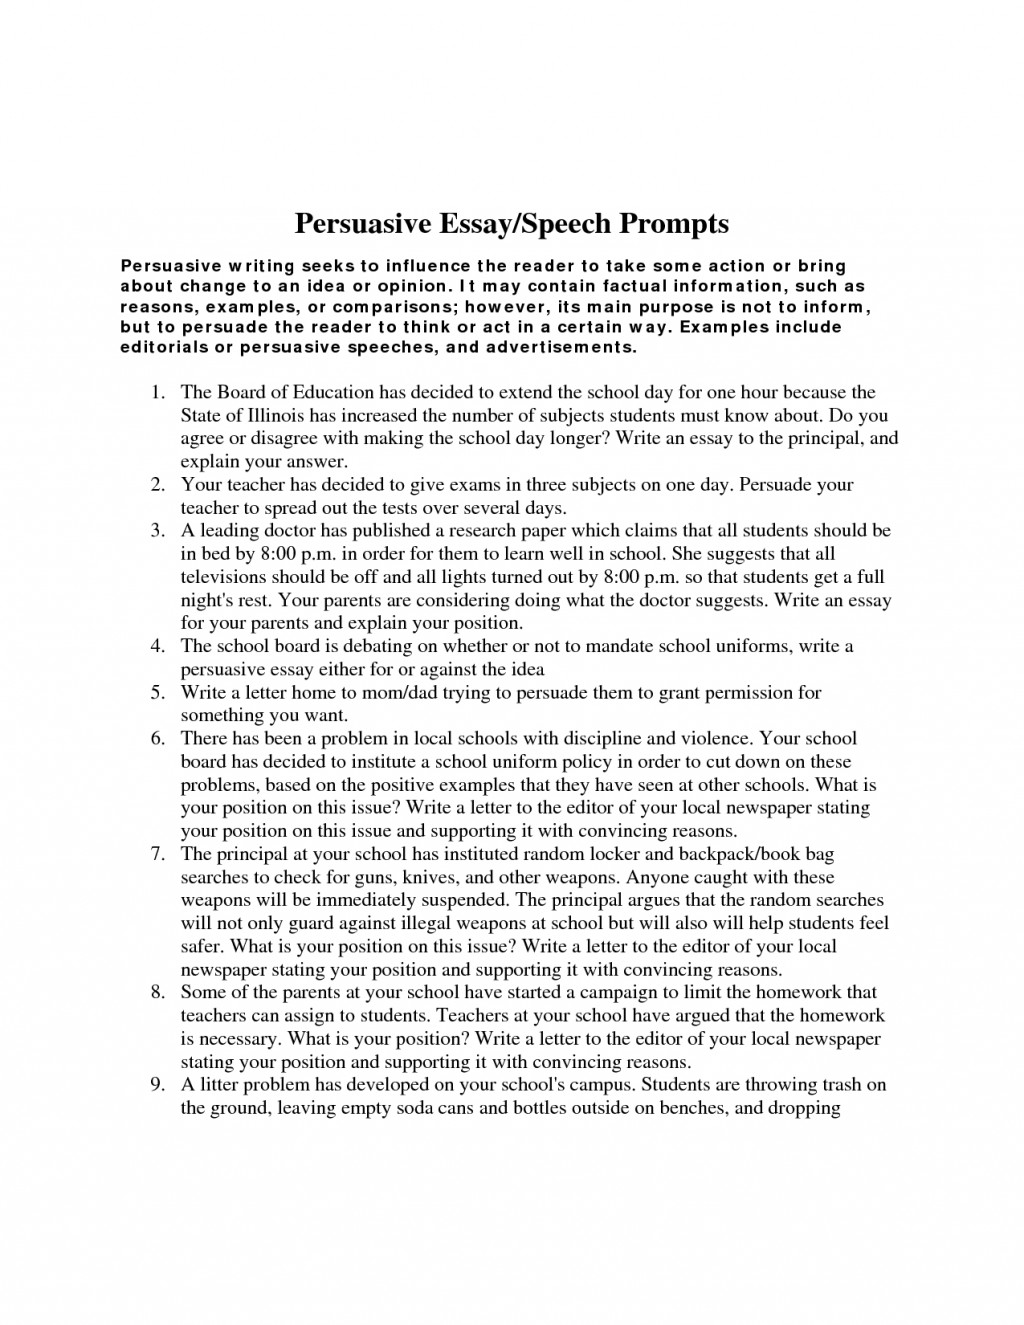 012 Essay Example Persuasive Prompts Informative Remarkable Topics Expository For 5th Grade Paper College Middle School Large